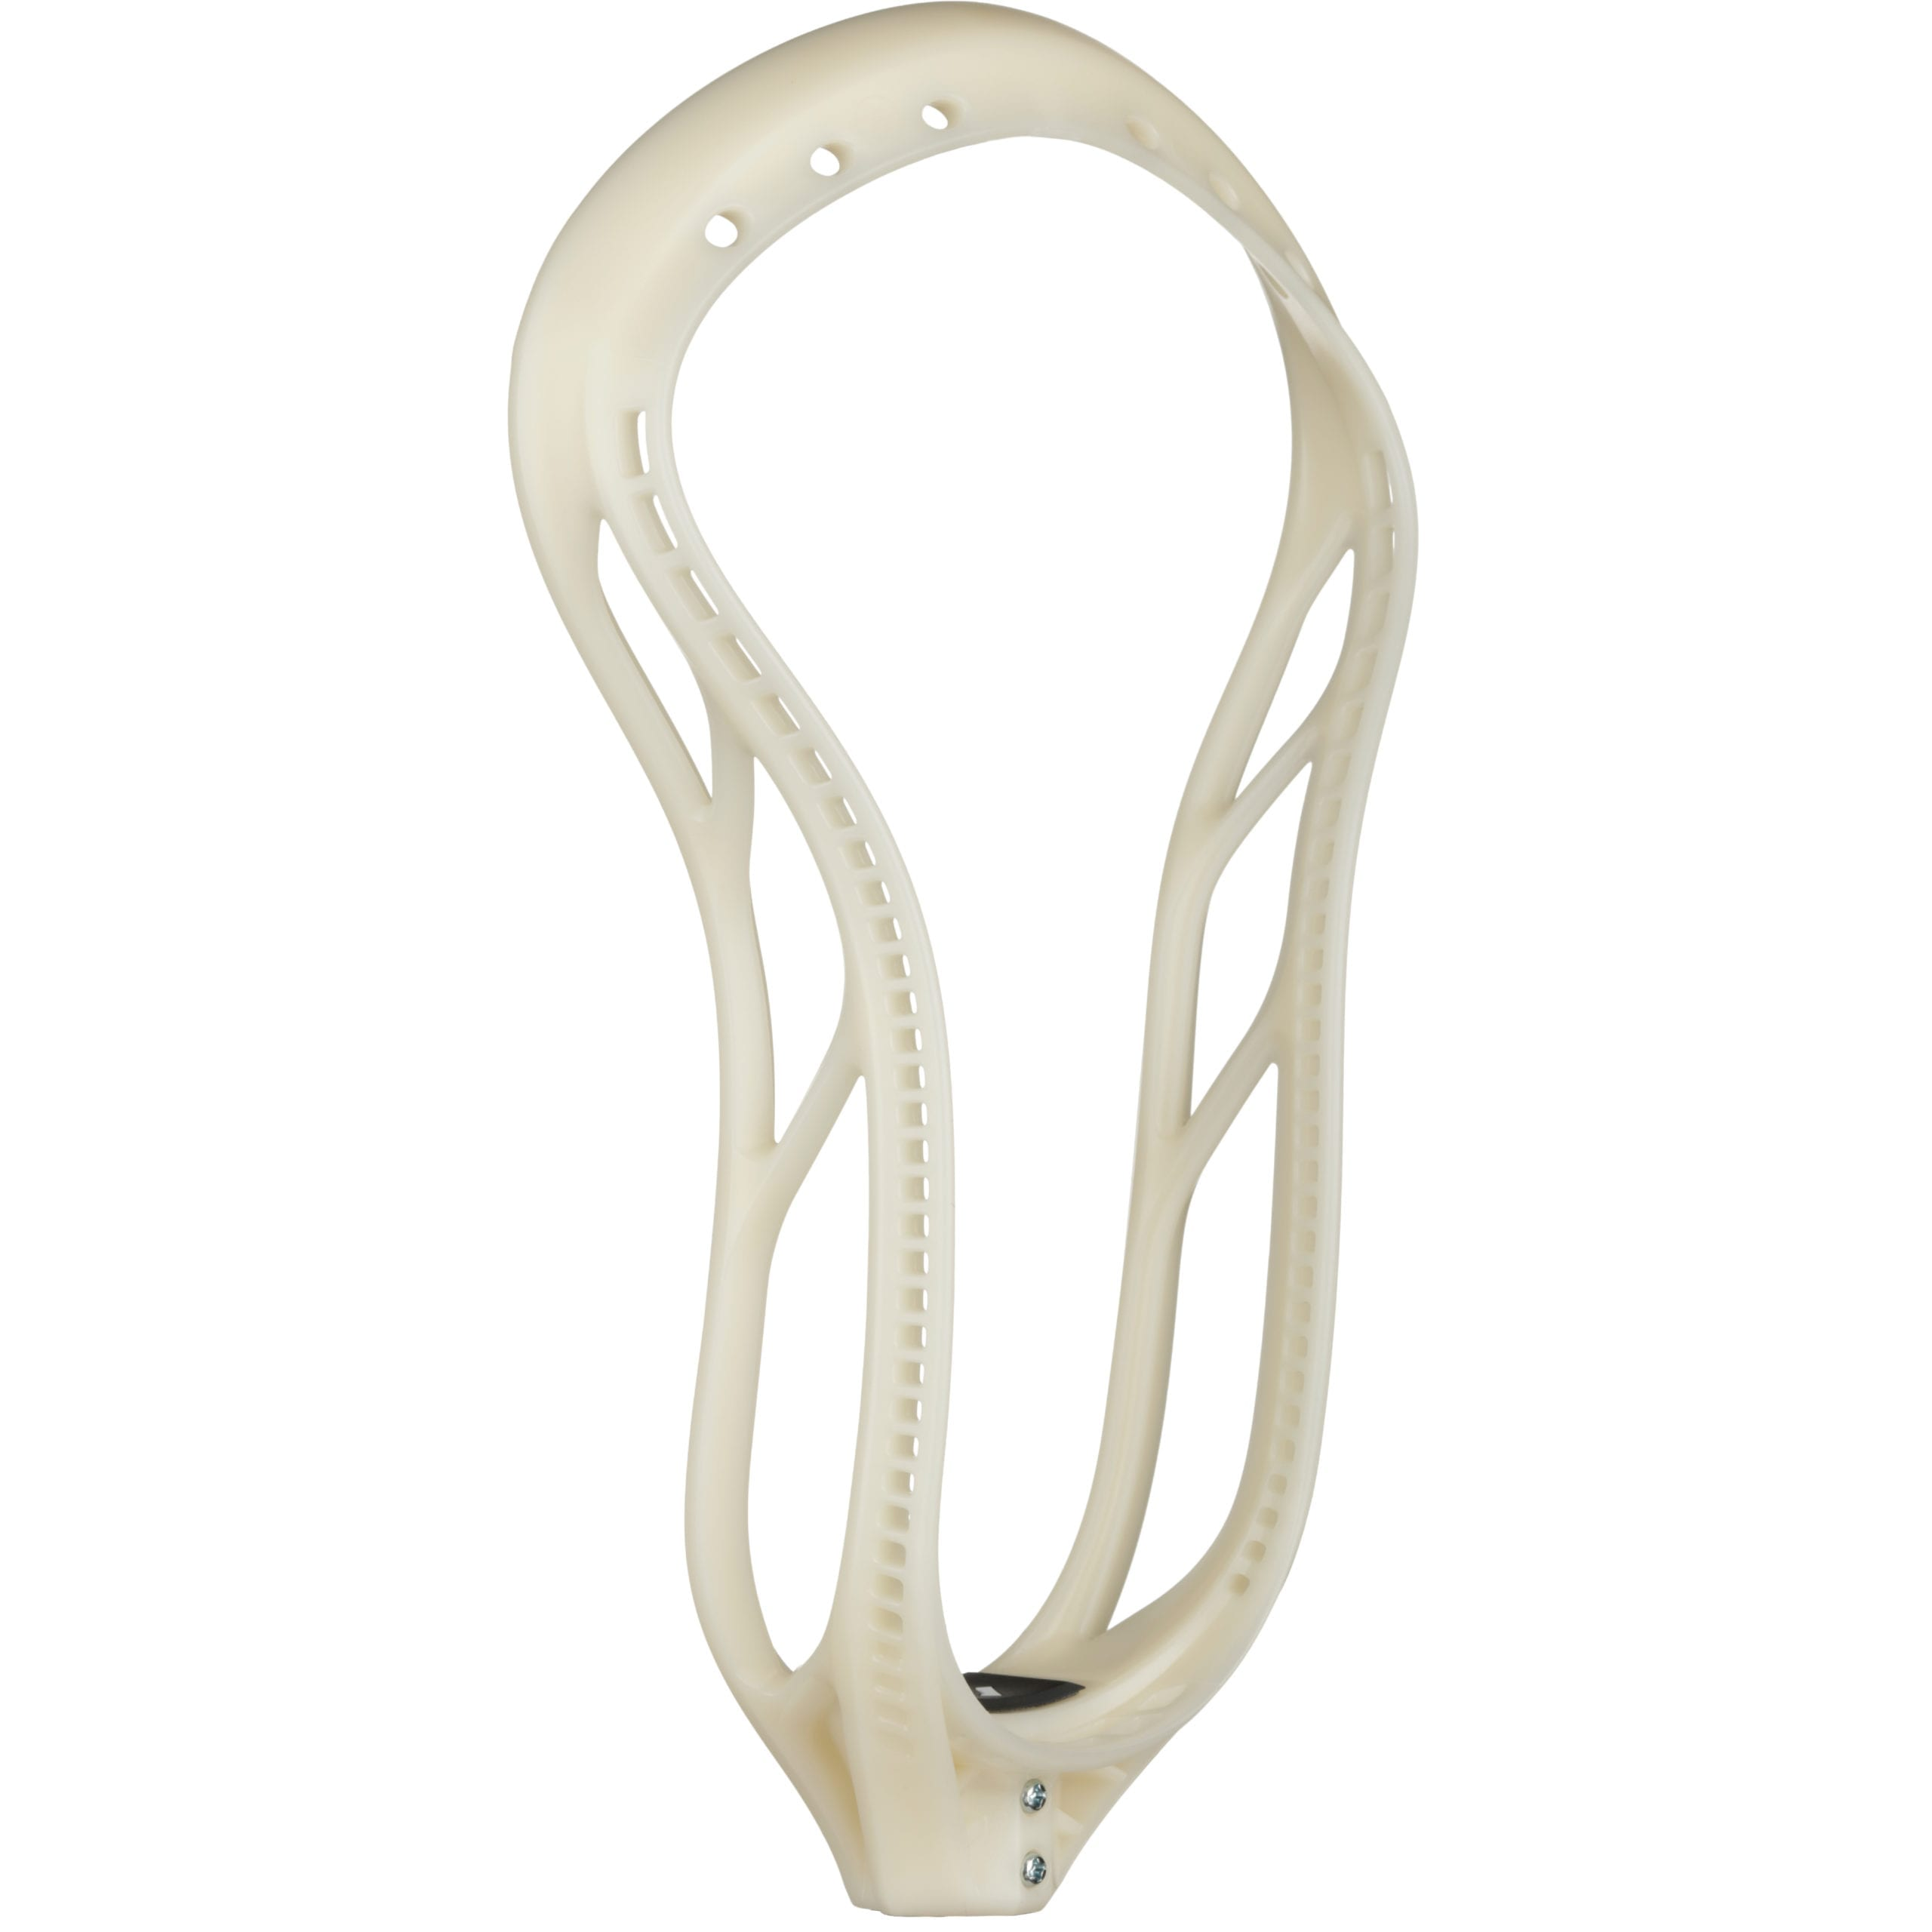 StringKing-Mark-2F-Stiff-Faceoff-Lacrosse-Head-Raw-Unstrung-Back-Angle-scaled-1.jpg